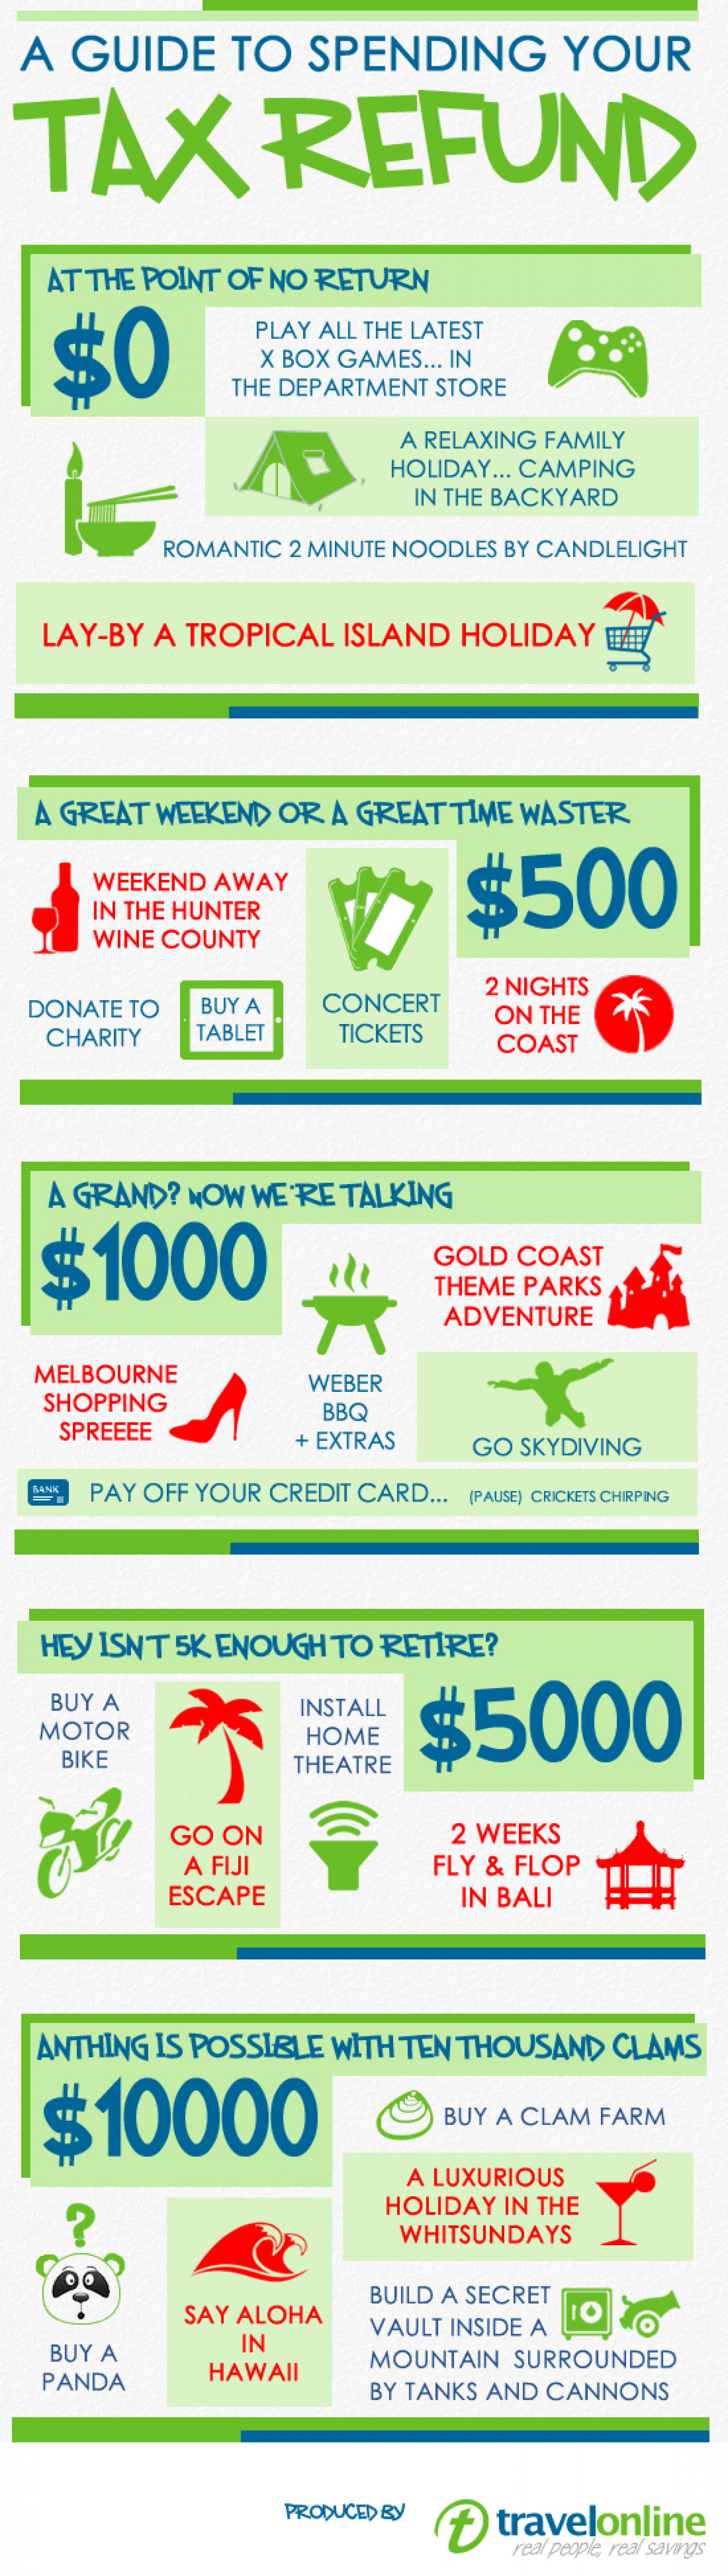 How to Spend Your Tax Refund Infographic